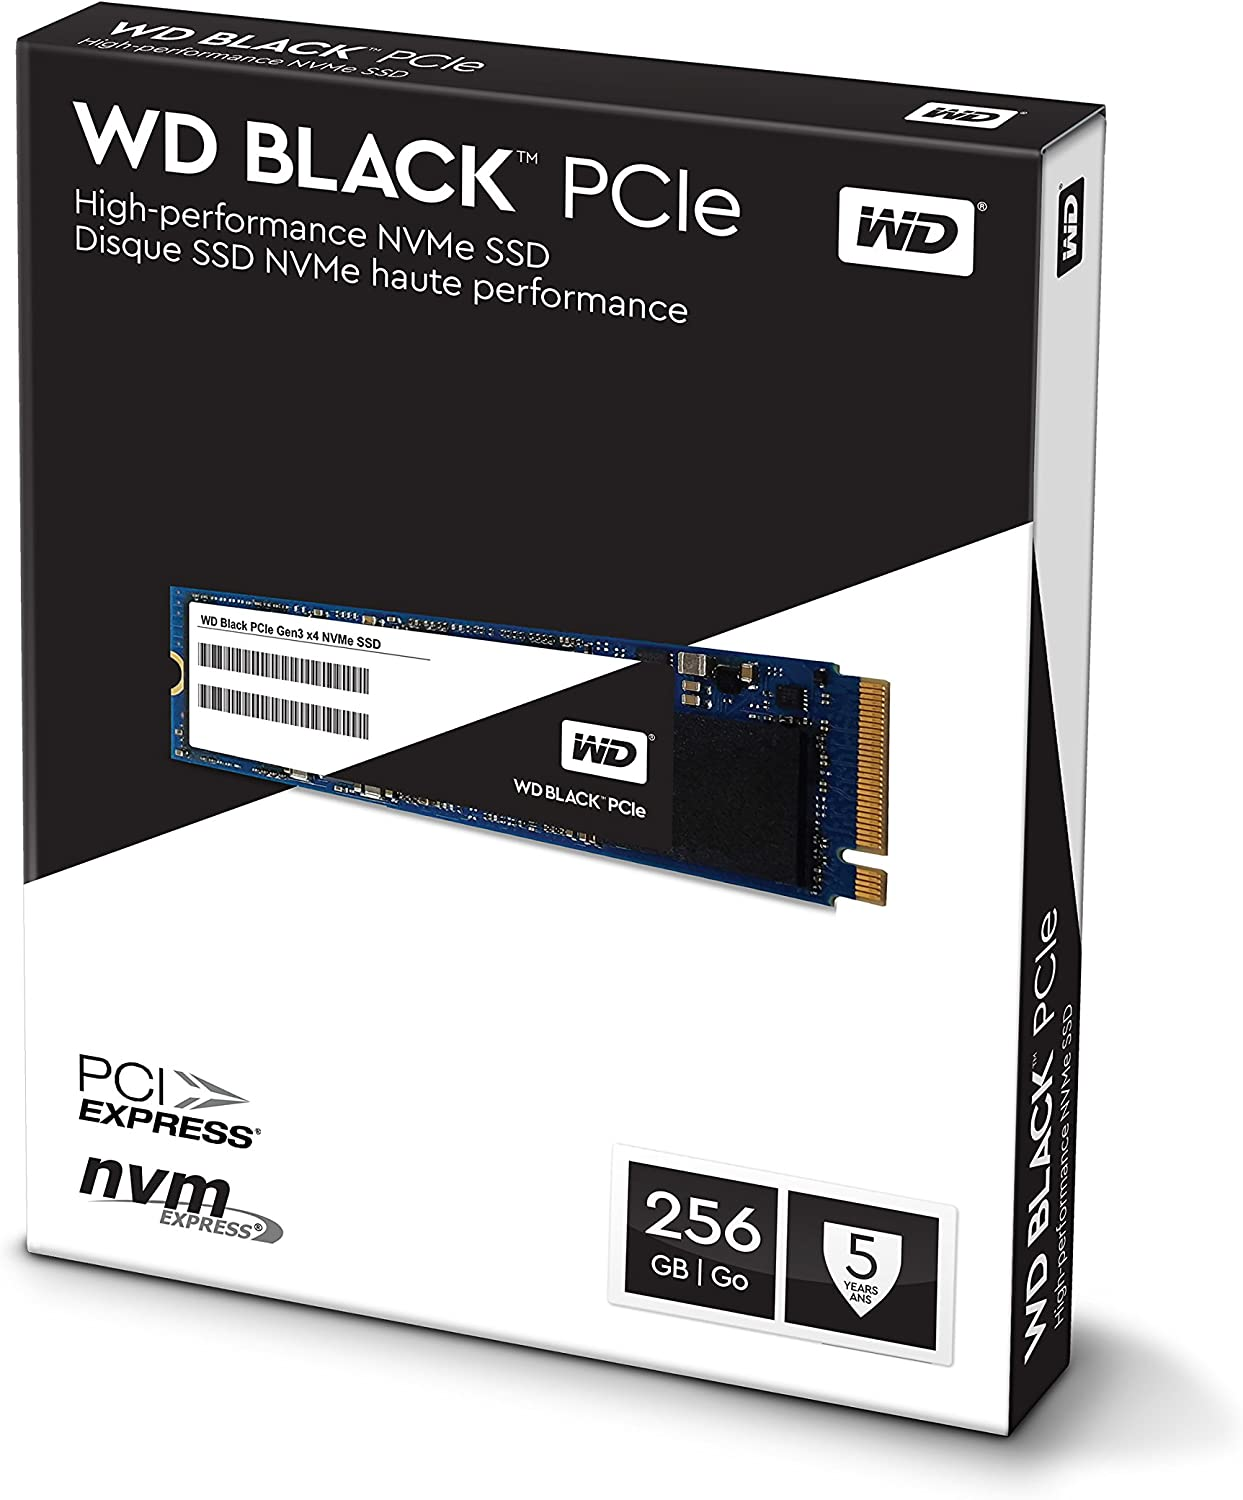 8 Gb//s M.2 2280 PCIe NVMe Solid State Drive WDS512G1X0C Old Version WD Black 512GB Performance SSD